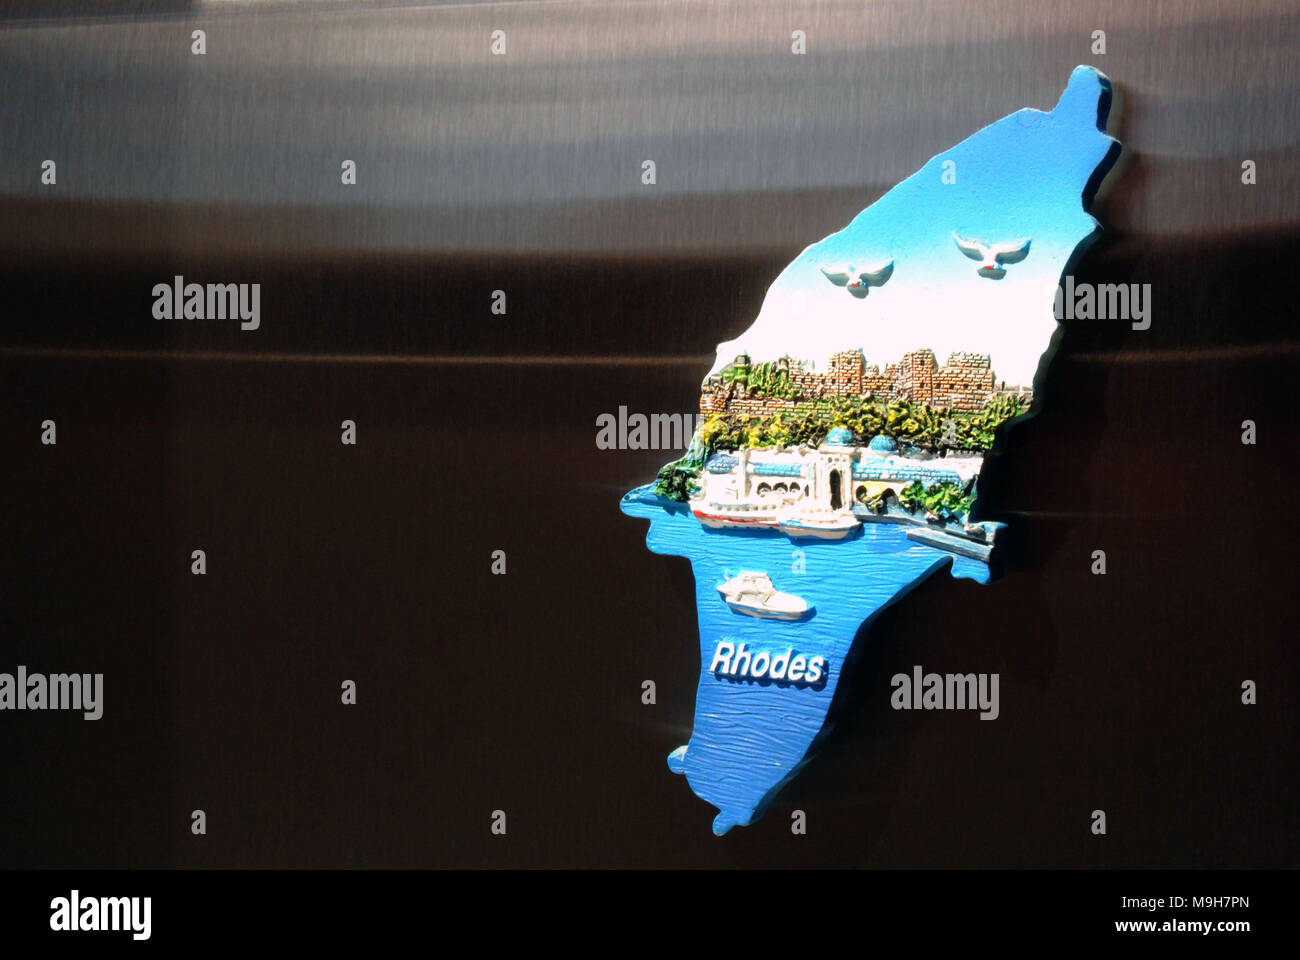 A fridge magnet from Rhodes, Greece in the shape of the actual island. - Stock Image